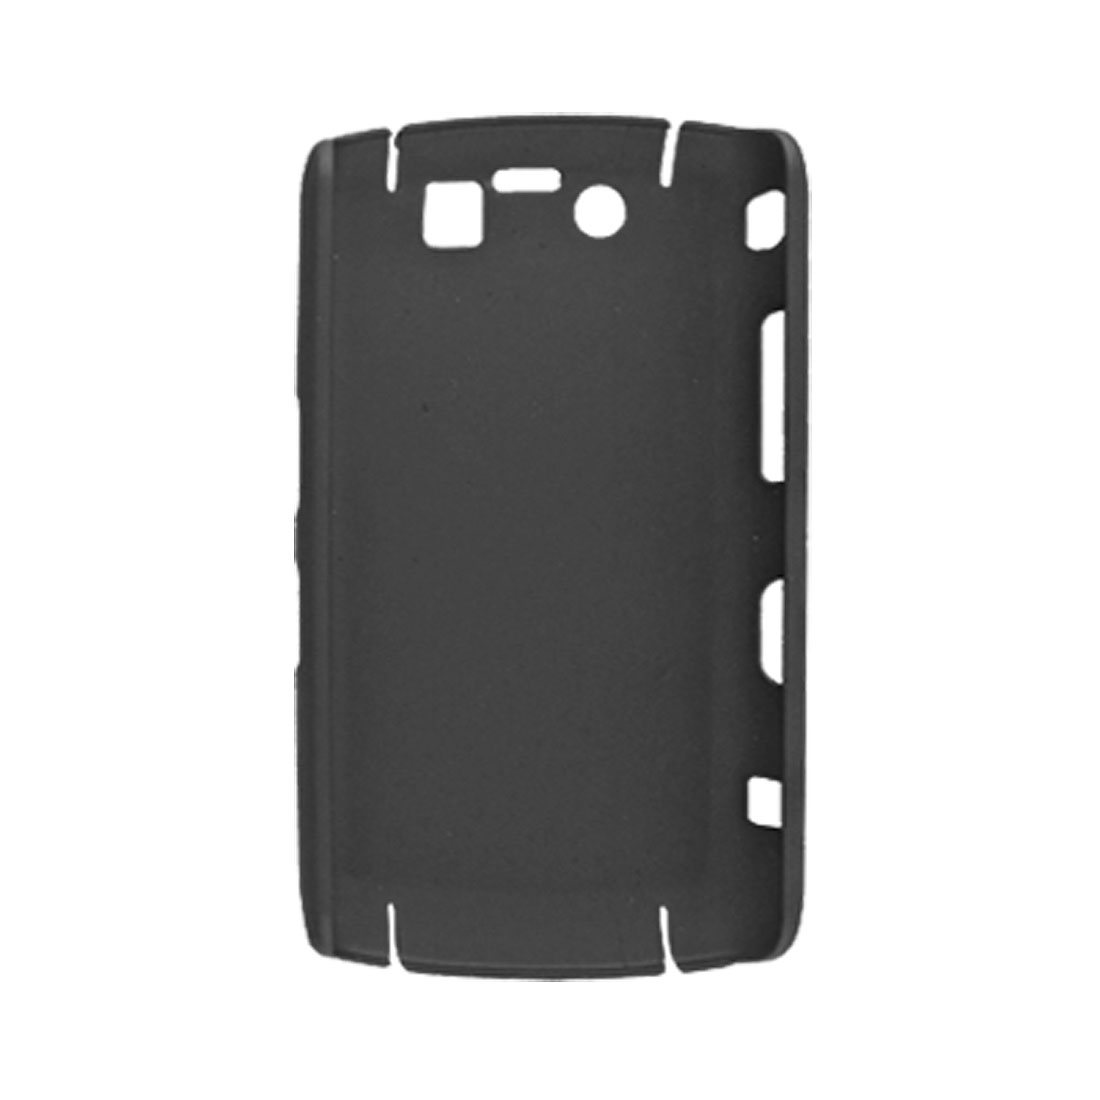 Rubberized Hard Plastic Shell Case for BB 9700 Black